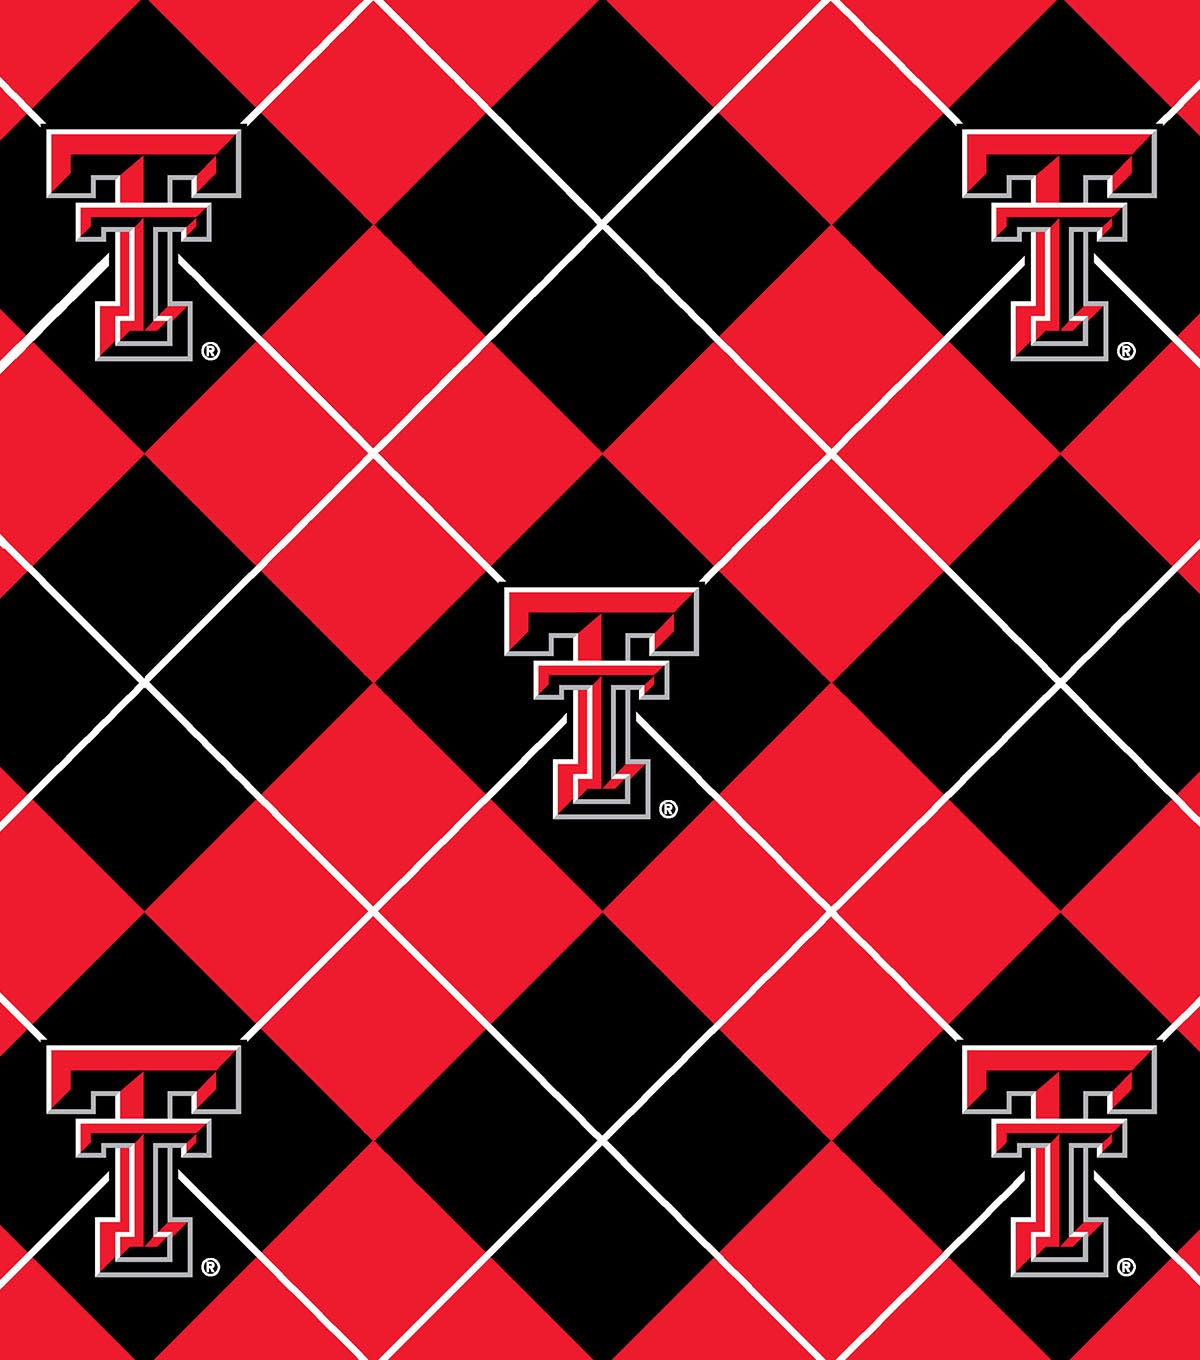 Texas Tech University Red Raiders Fleece Fabric 58\u0022-Argyle